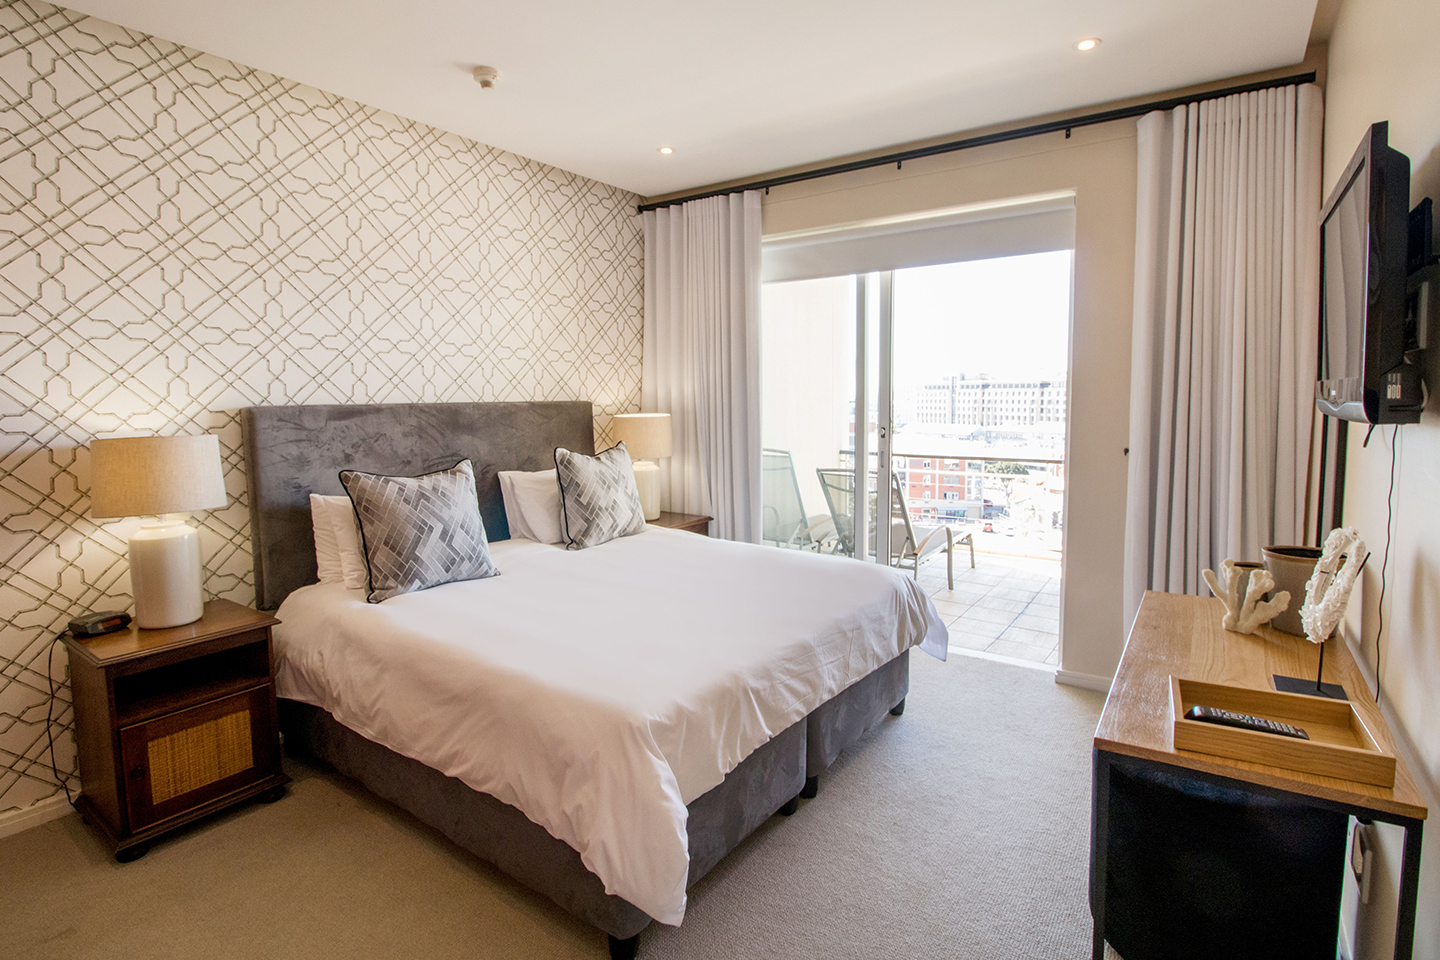 Bedroom area at Waterfront Village, Waterfront, Cape Town - Citybase Apartments